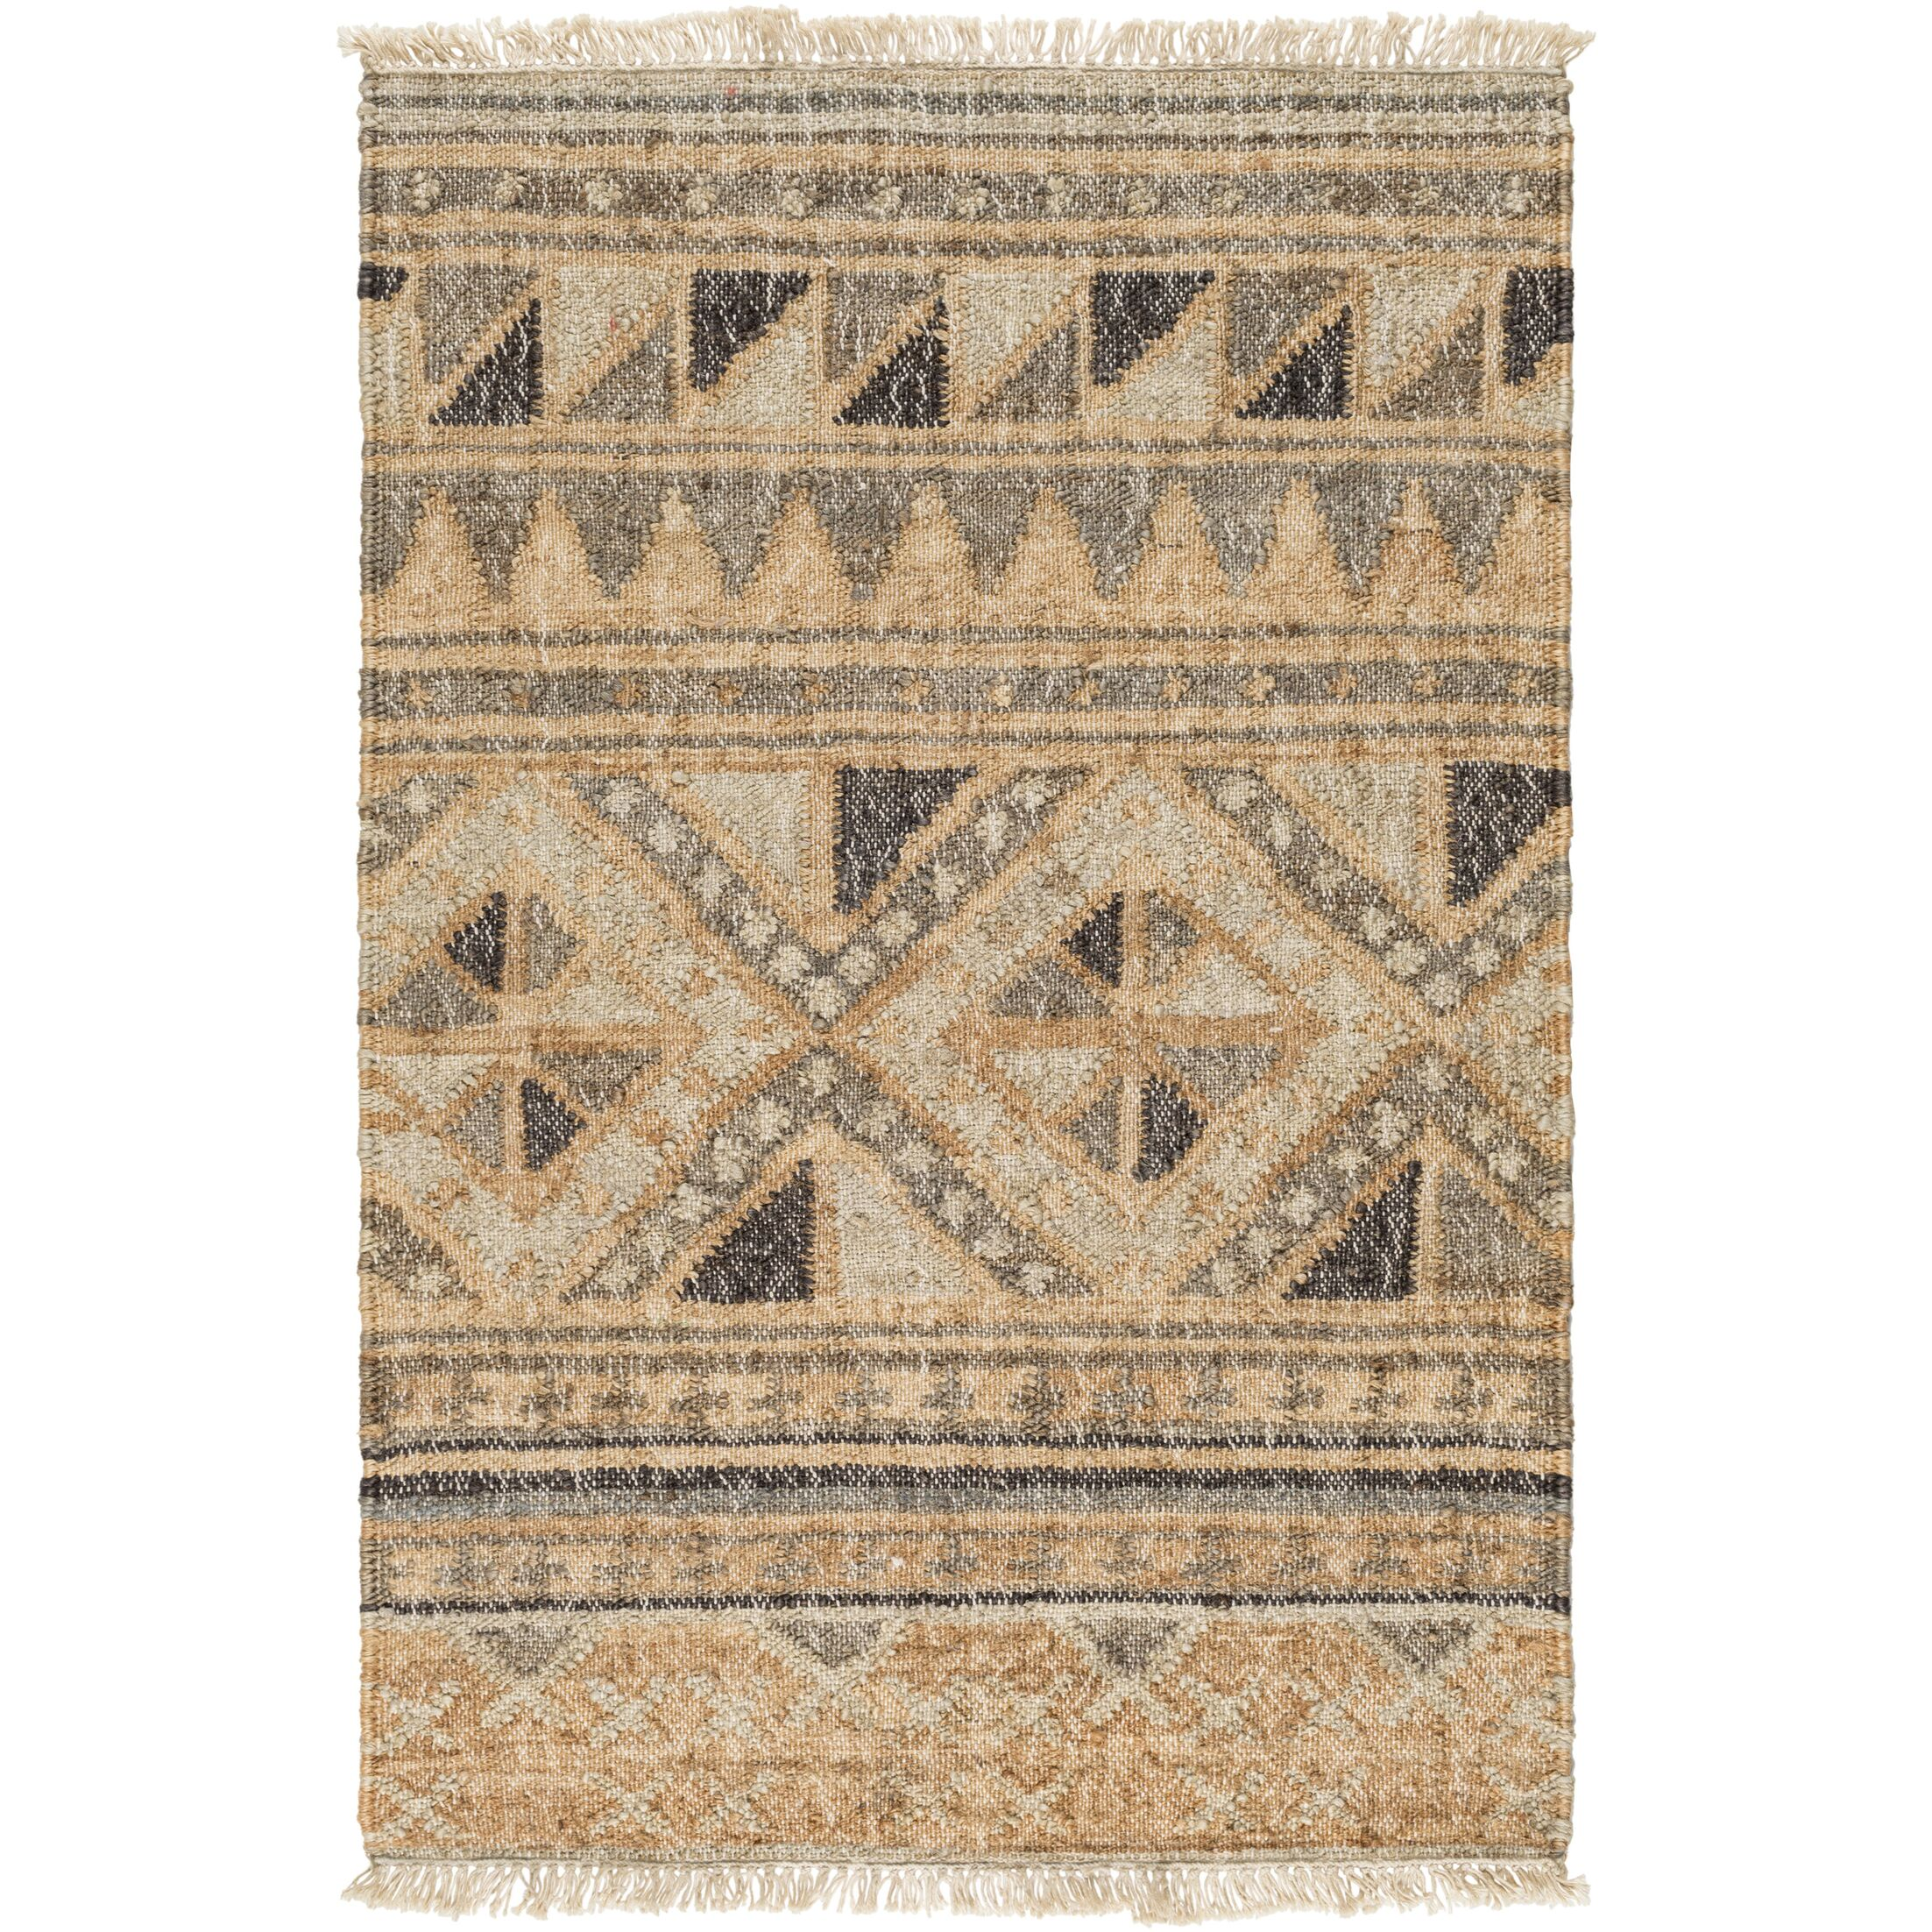 Essex Hand-Woven Brown Area Rug Rug Size: Rectangle 5' x 7'6